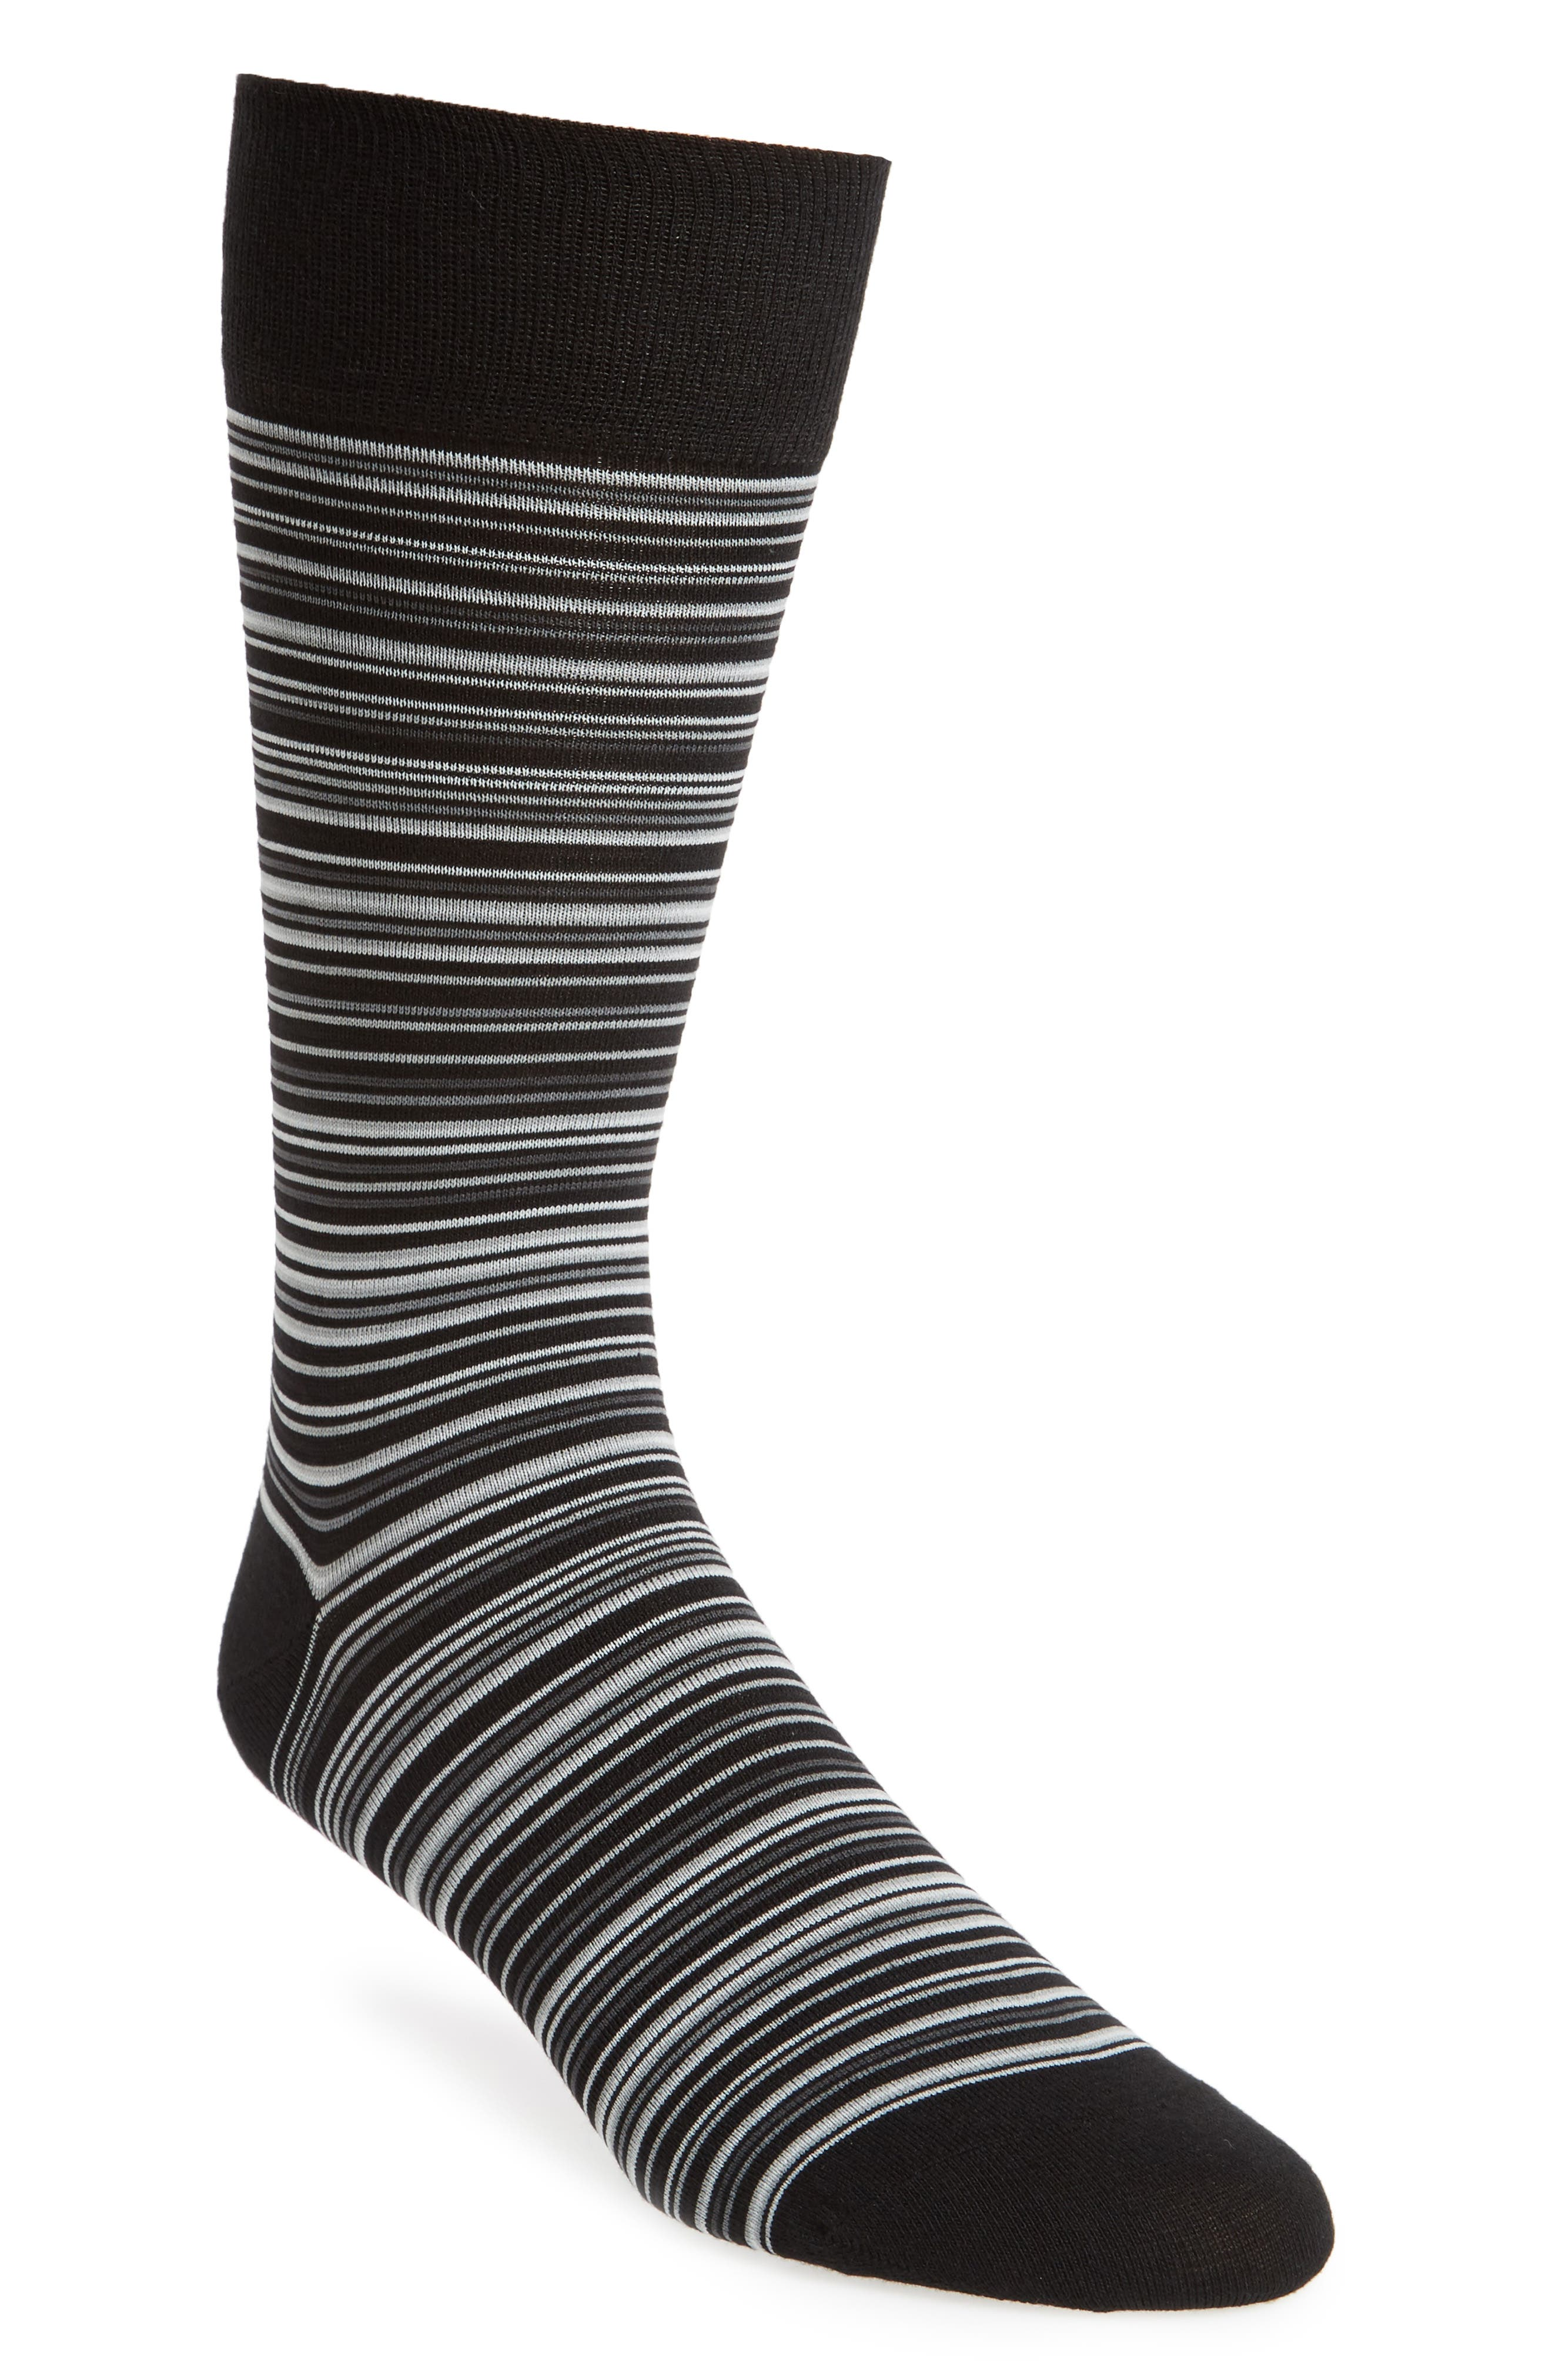 Multistripe Crew Socks,                             Main thumbnail 1, color,                             Black/ Grey